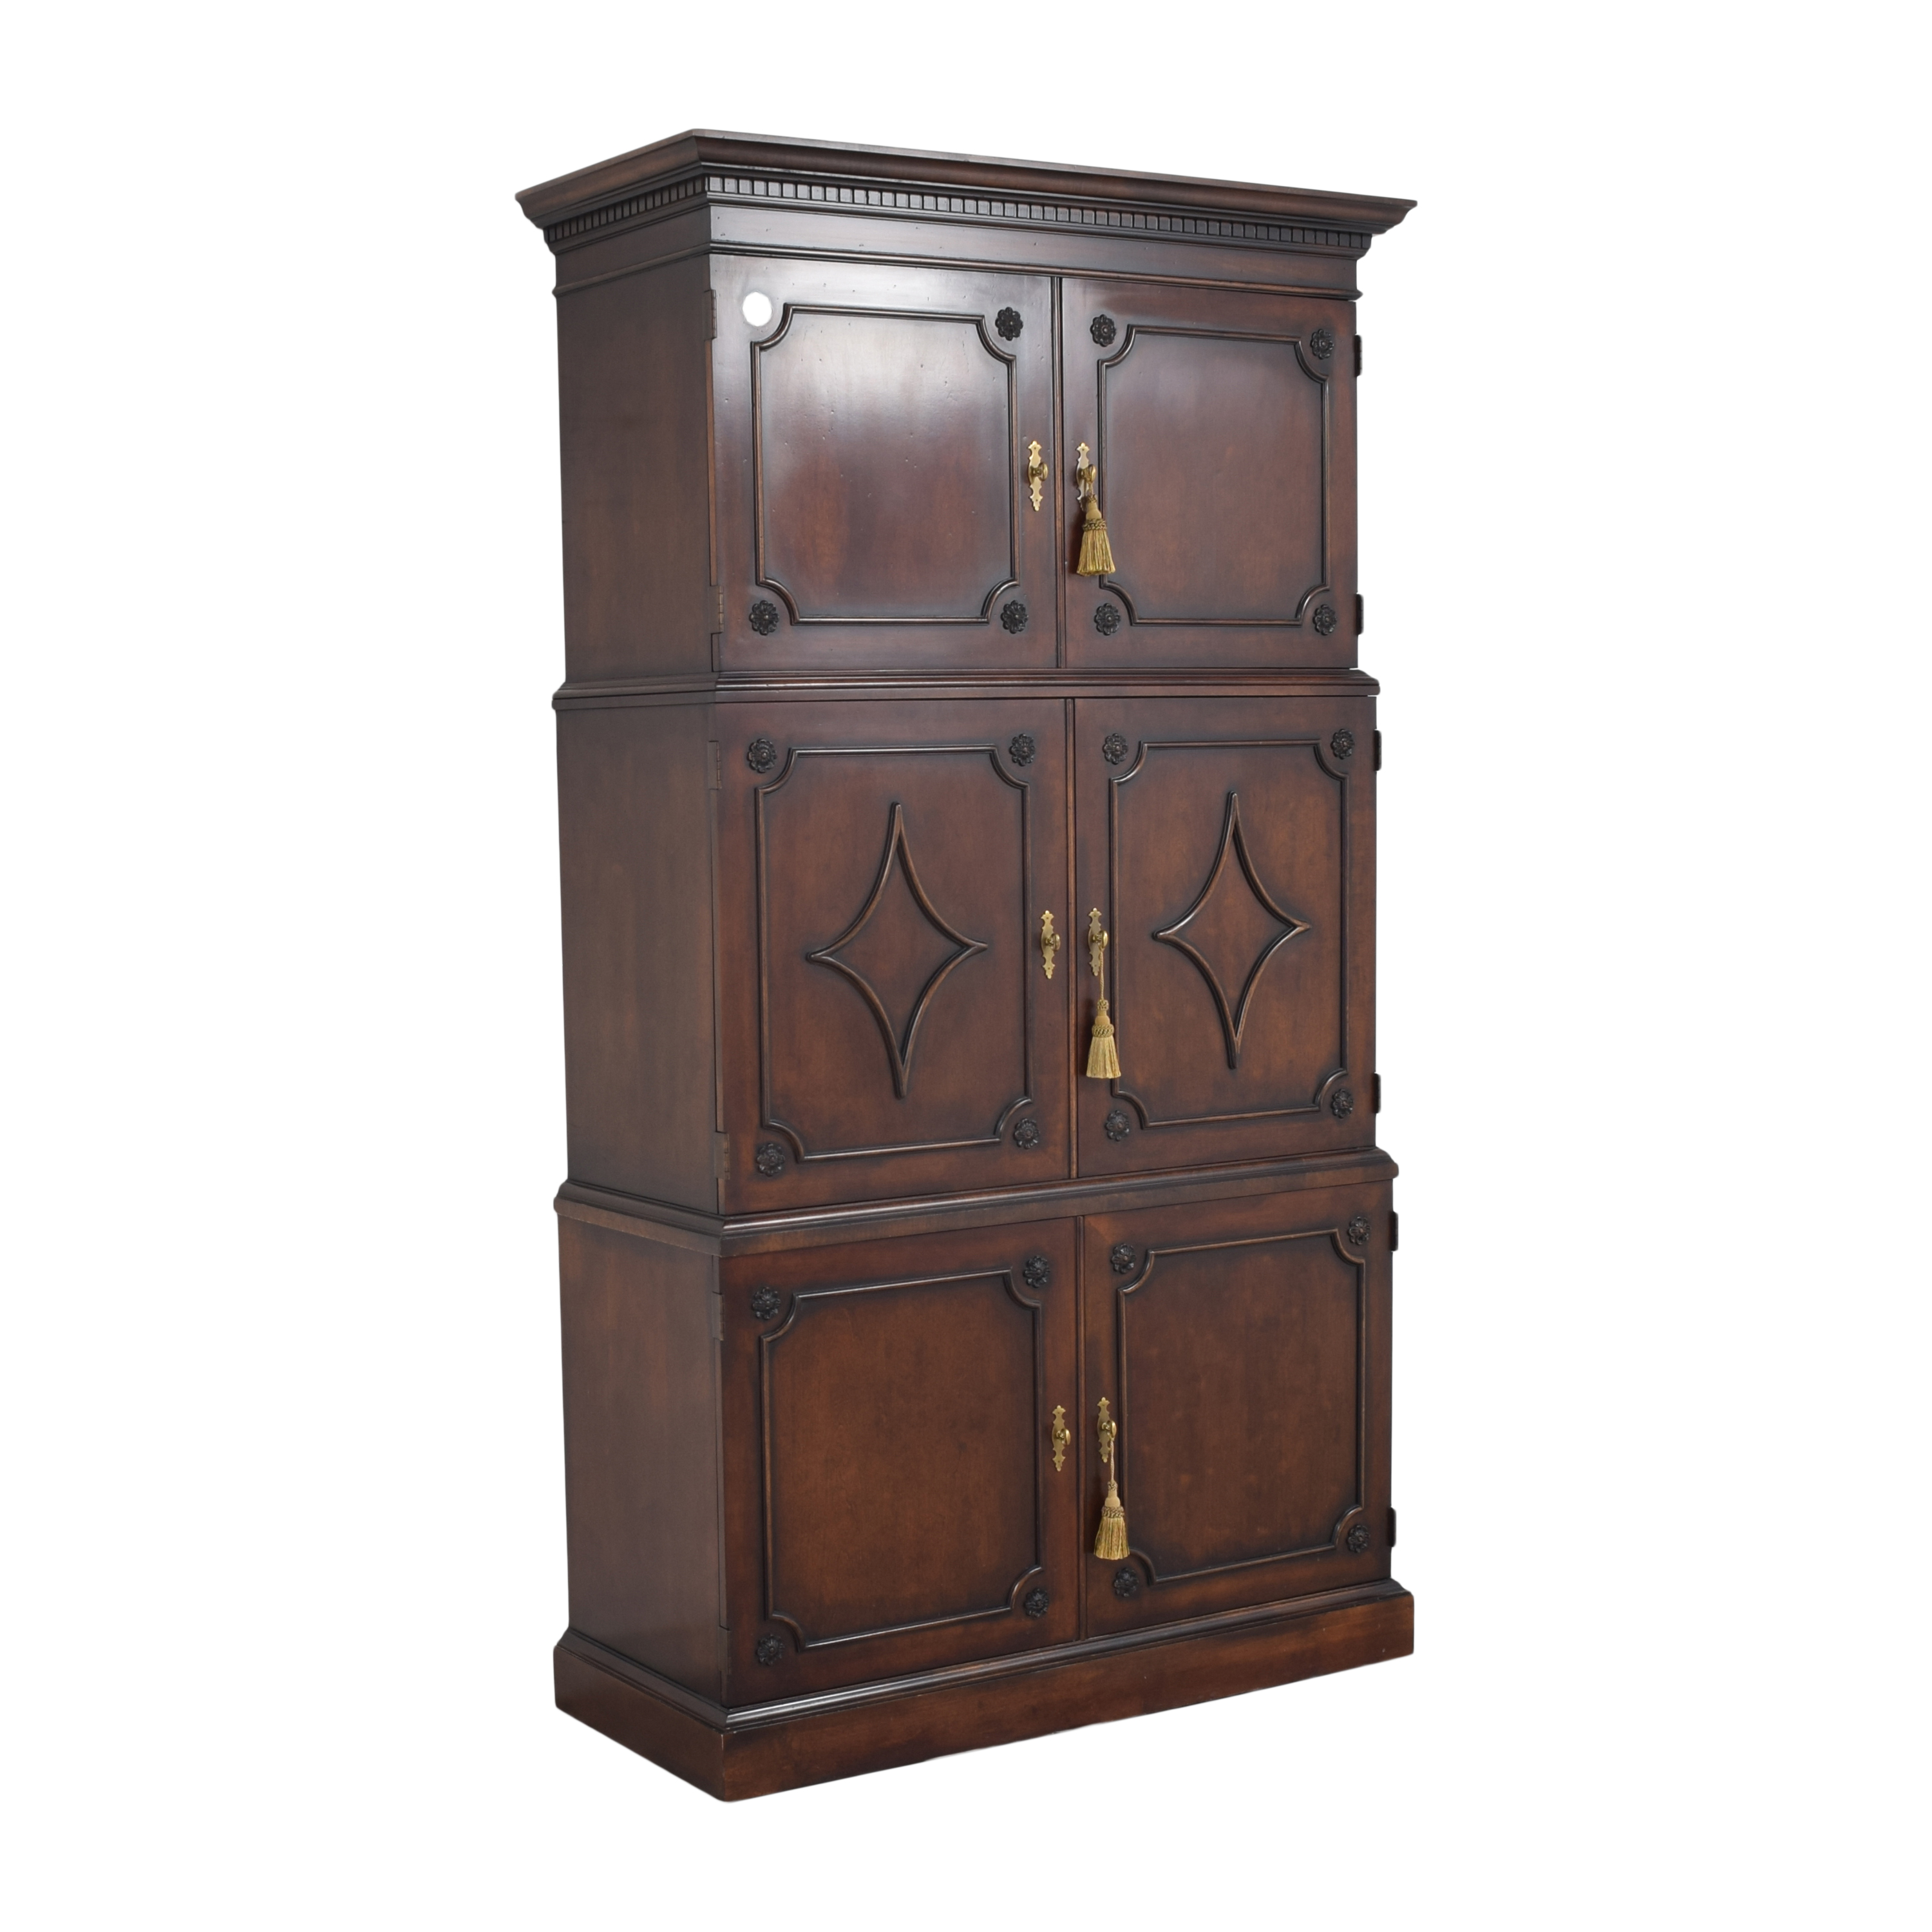 Hickory Chair Hickory Chair American Antique Collection Armoire  for sale